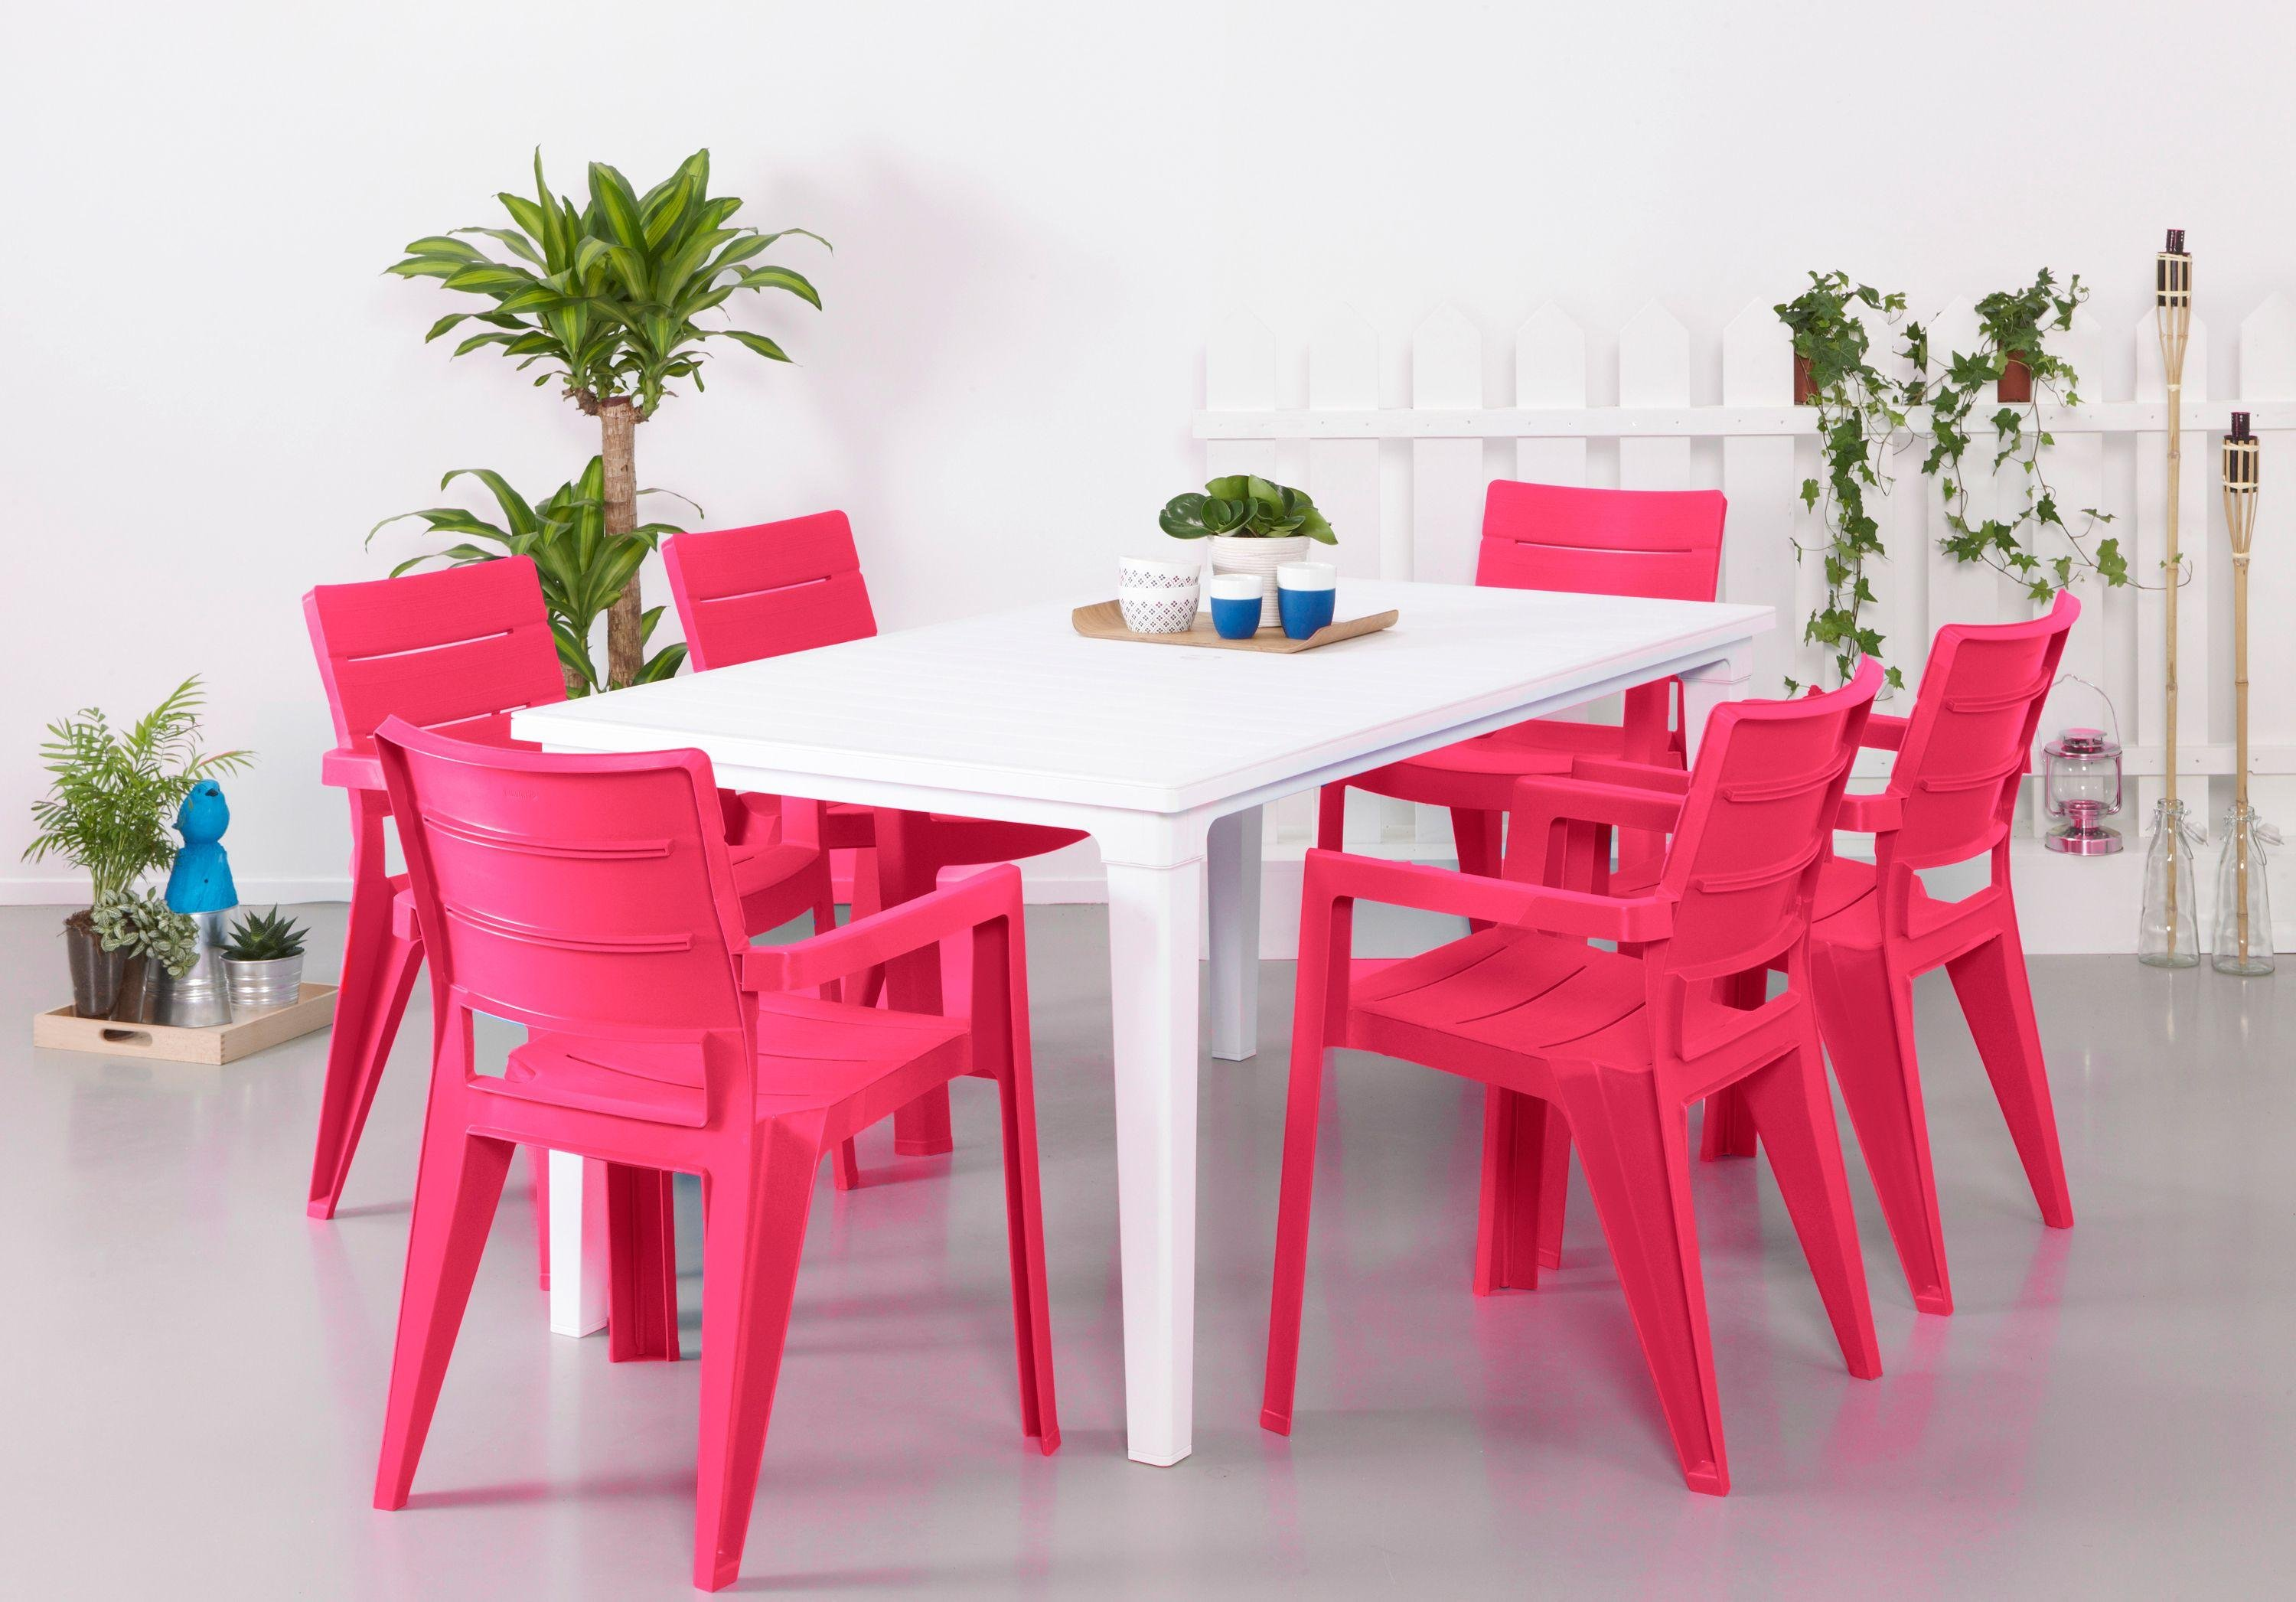 Futura Pink and White - 6 Seater Patio Set lowest price